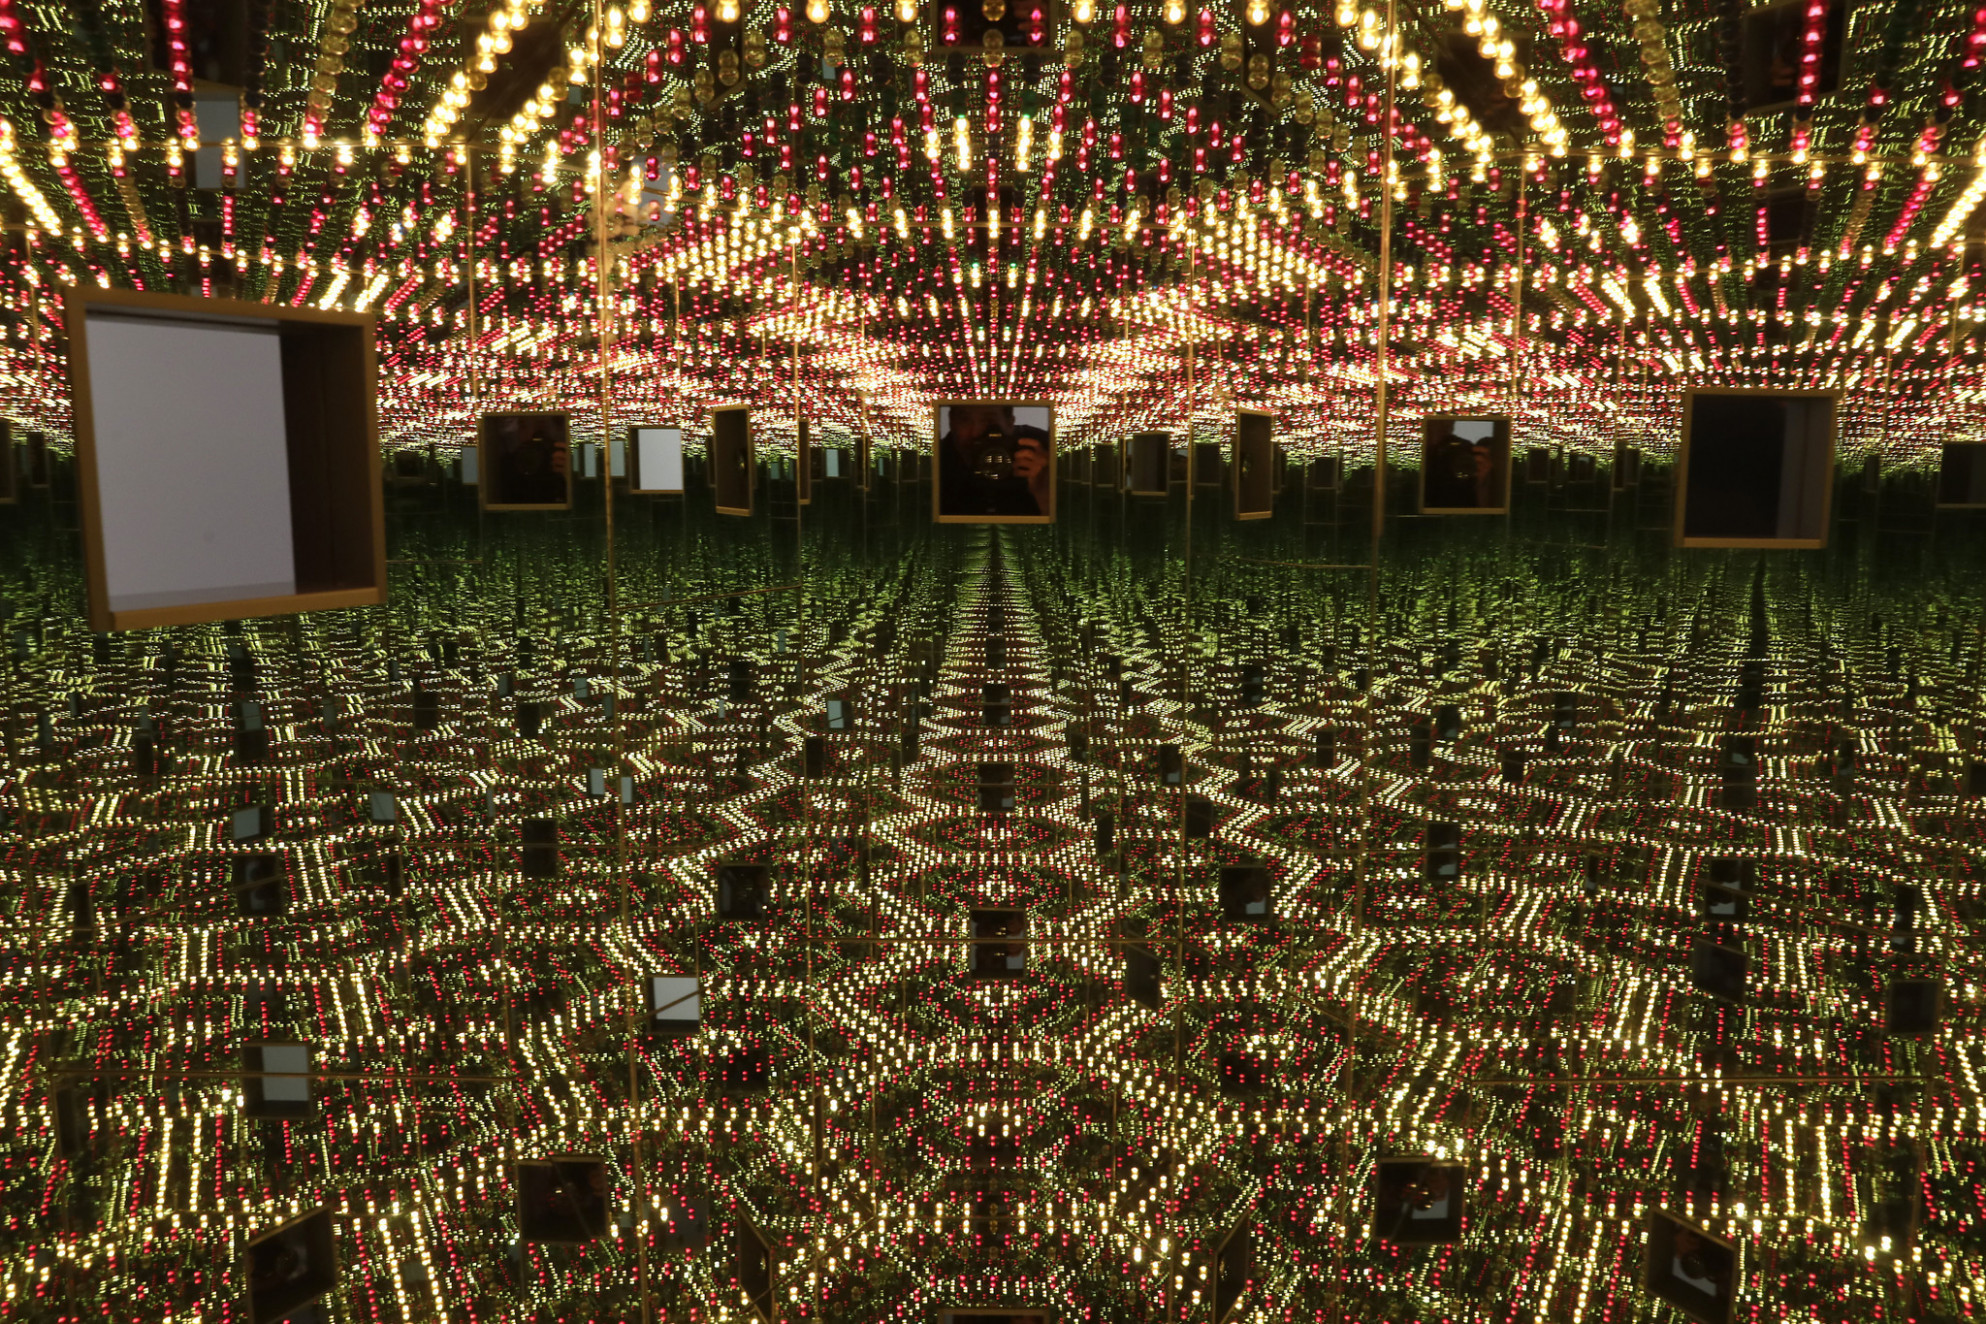 Yayoi Kusama at the Broad: Lots of mirrors, not so much artistic ..